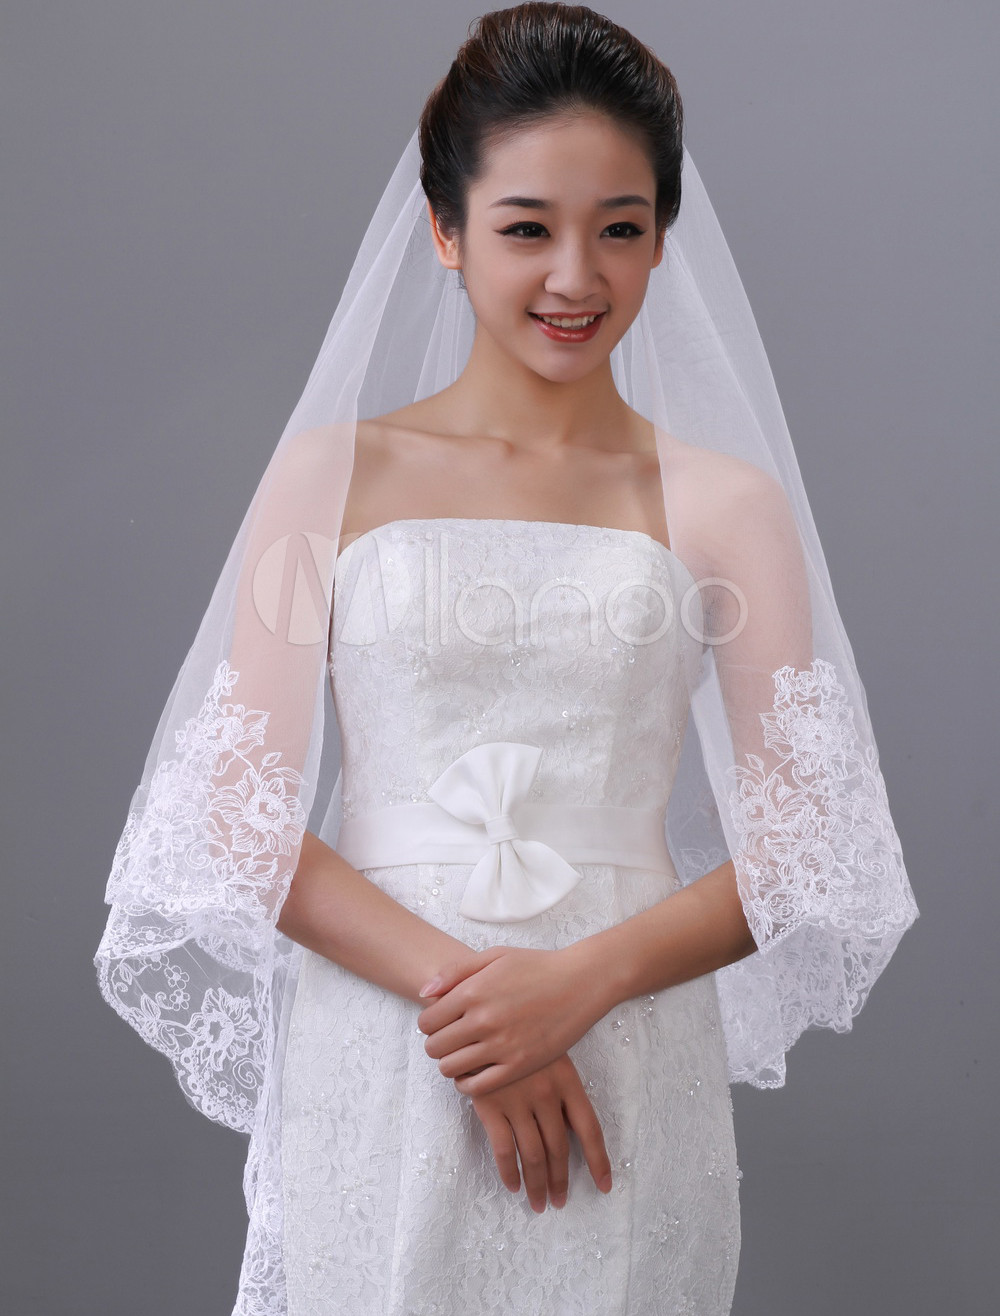 White Two-Tier Embroidery Waterfall Tulle Bridal Wedding Veil